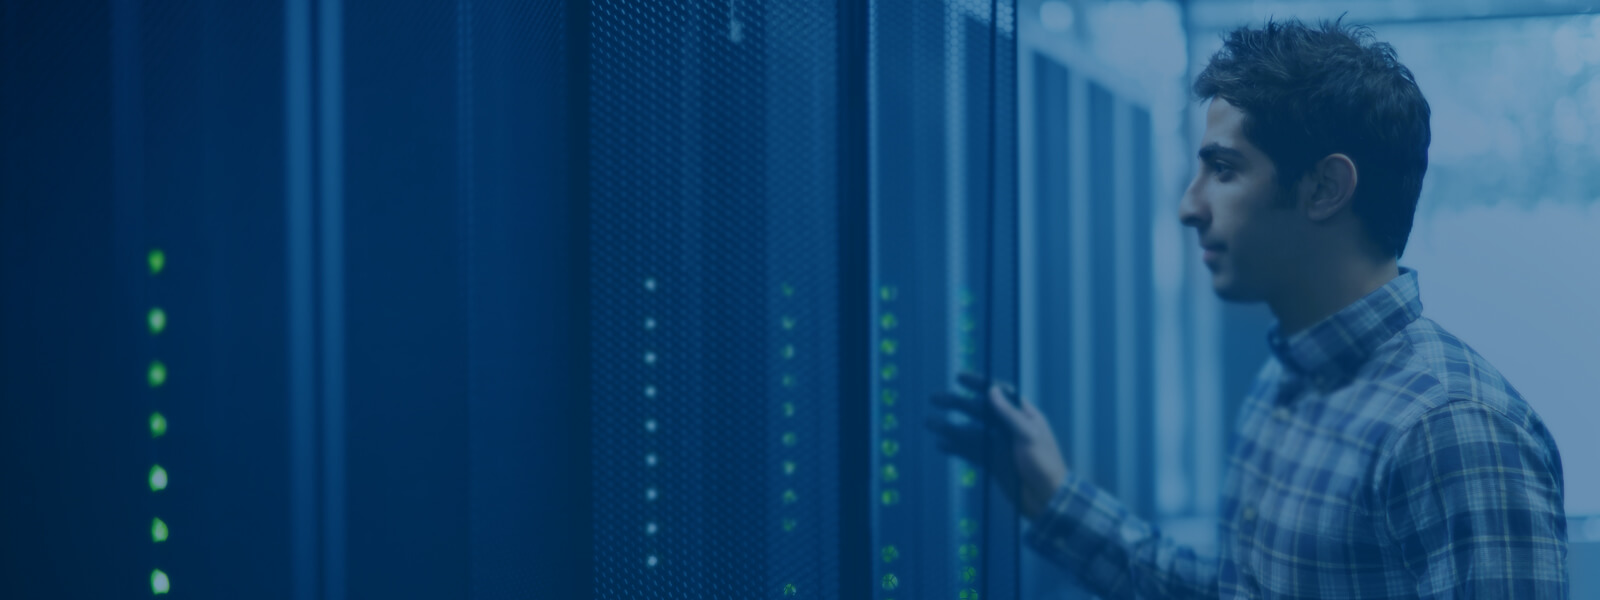 Server infrastructure management is a must. Simplificați, automatizați și optimizați operațiunile IT cu ajutorul Dell EMC OpenManage